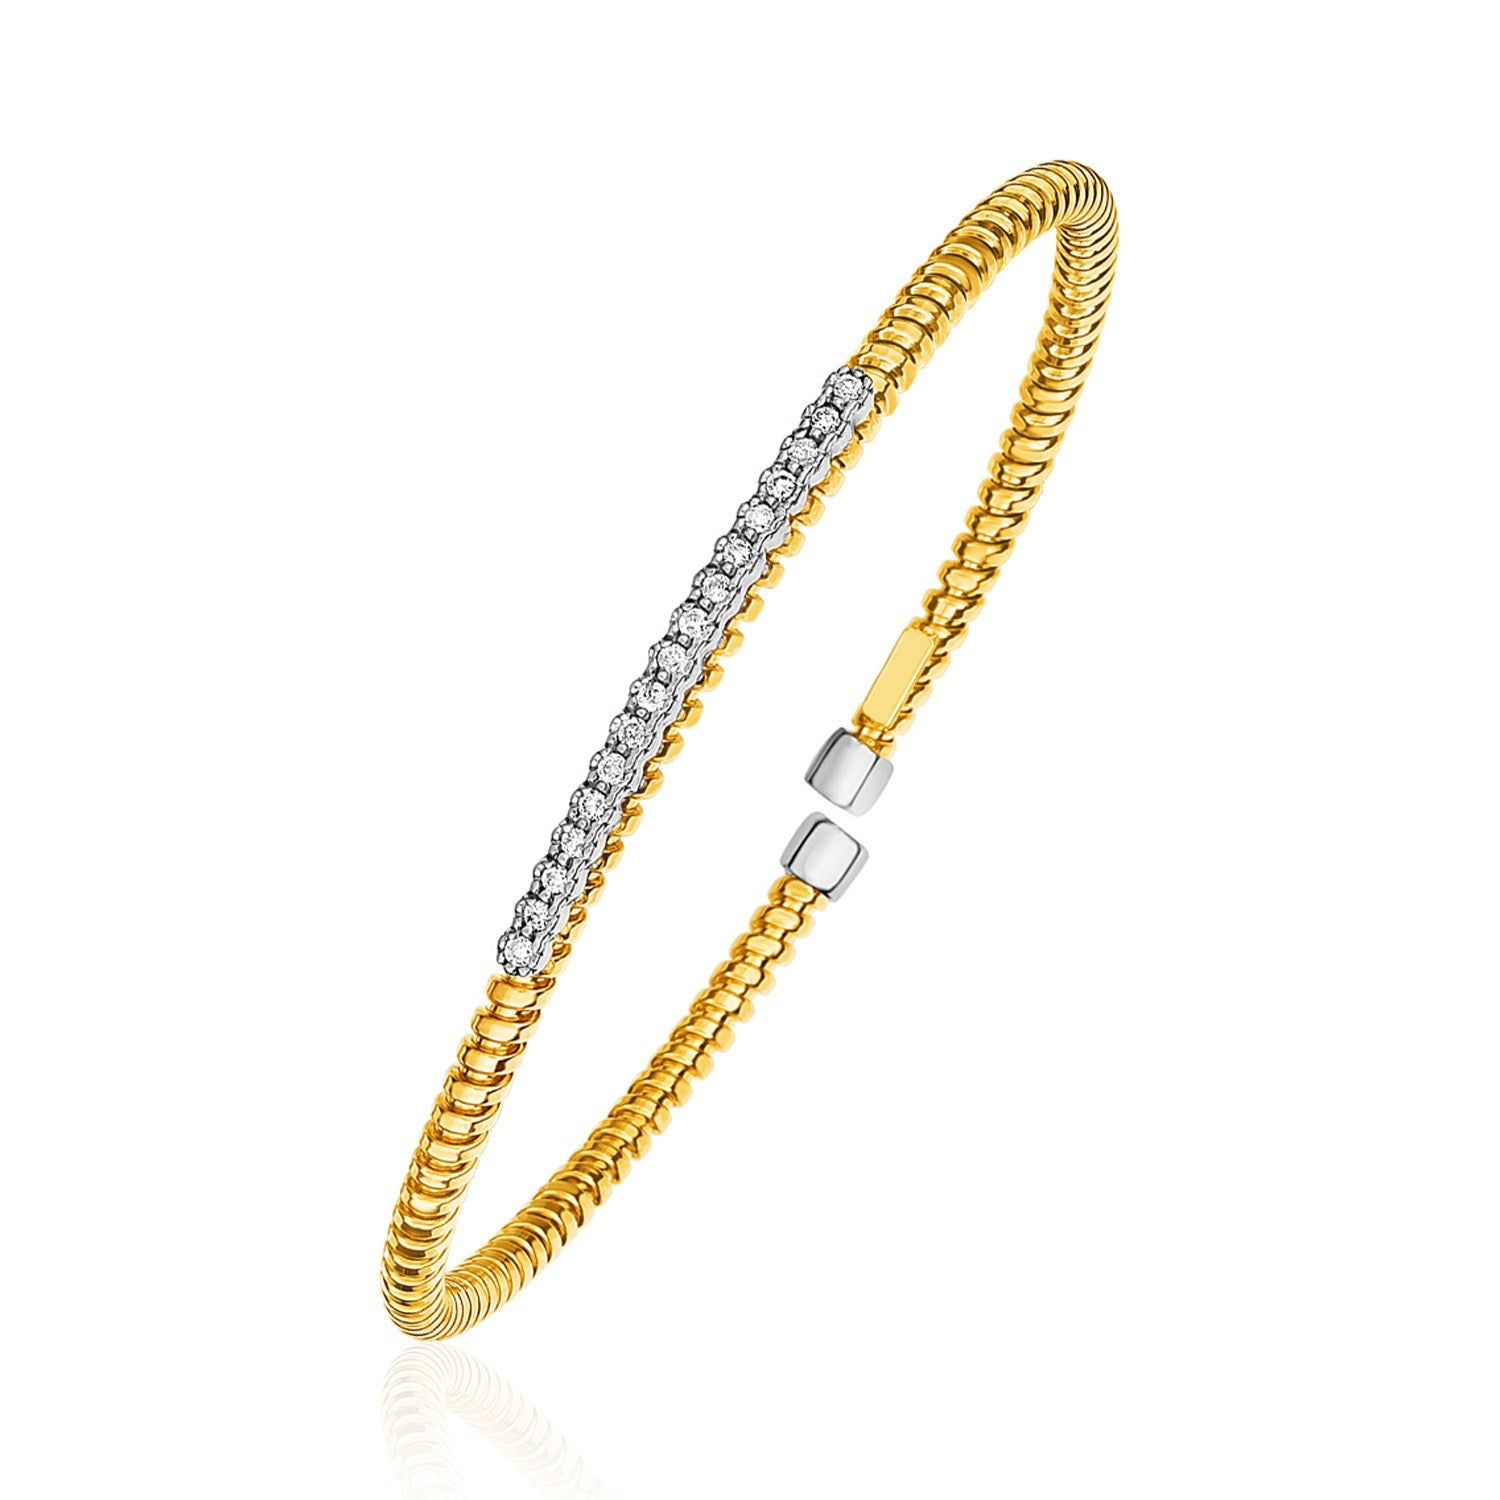 id z bracelet org type jewelry pearl gold bracelets at bangle for sale victorian j bangles